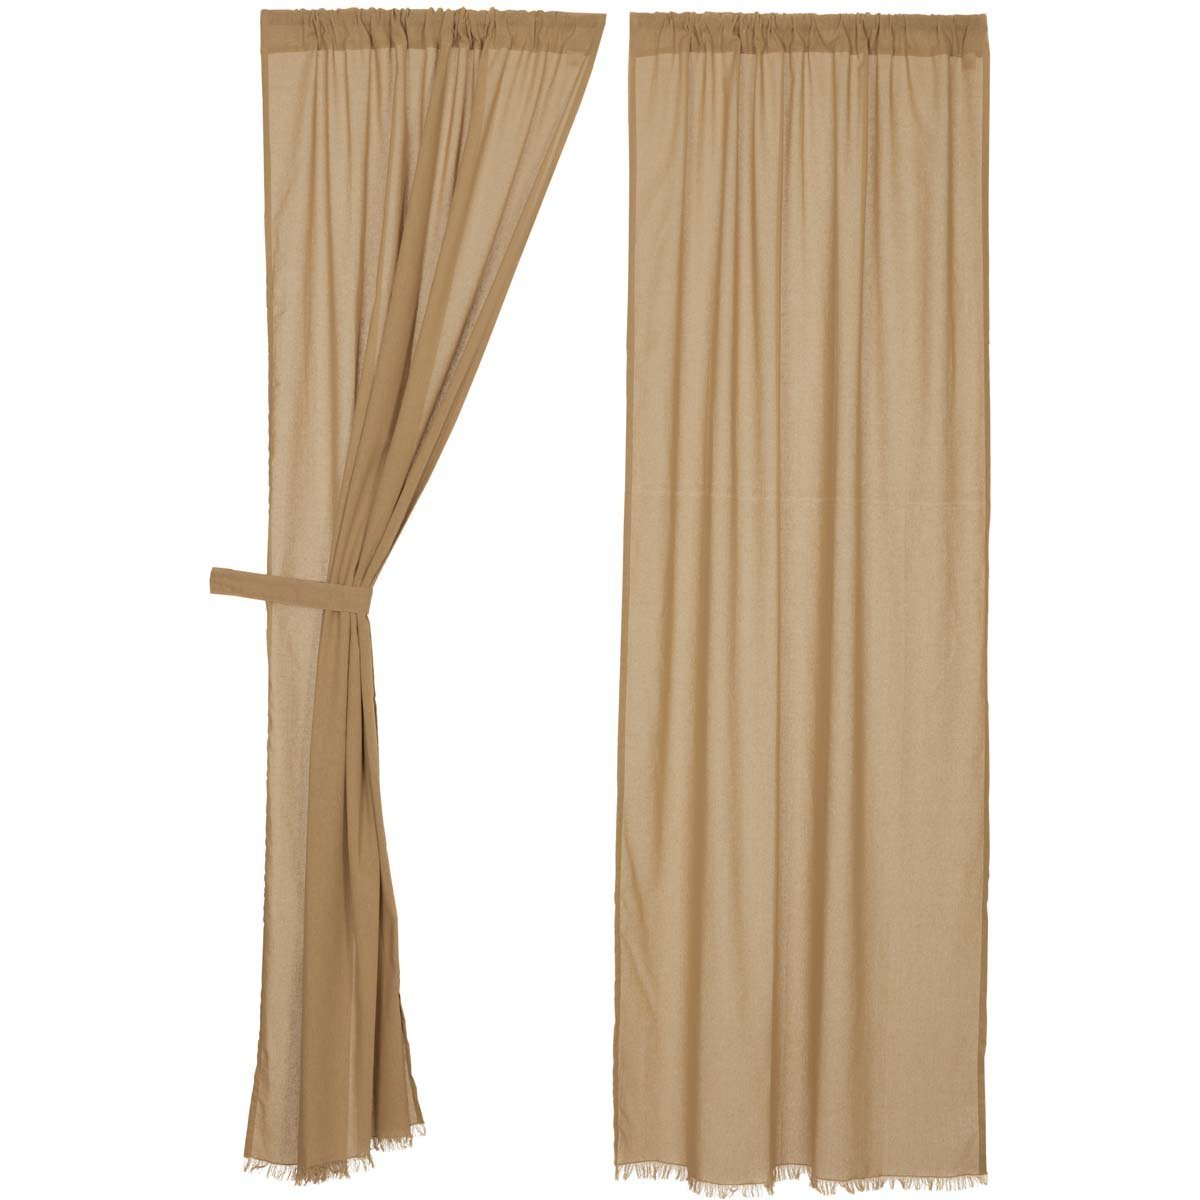 Tobacco Cloth Tan Panel Fringed Set of 2.